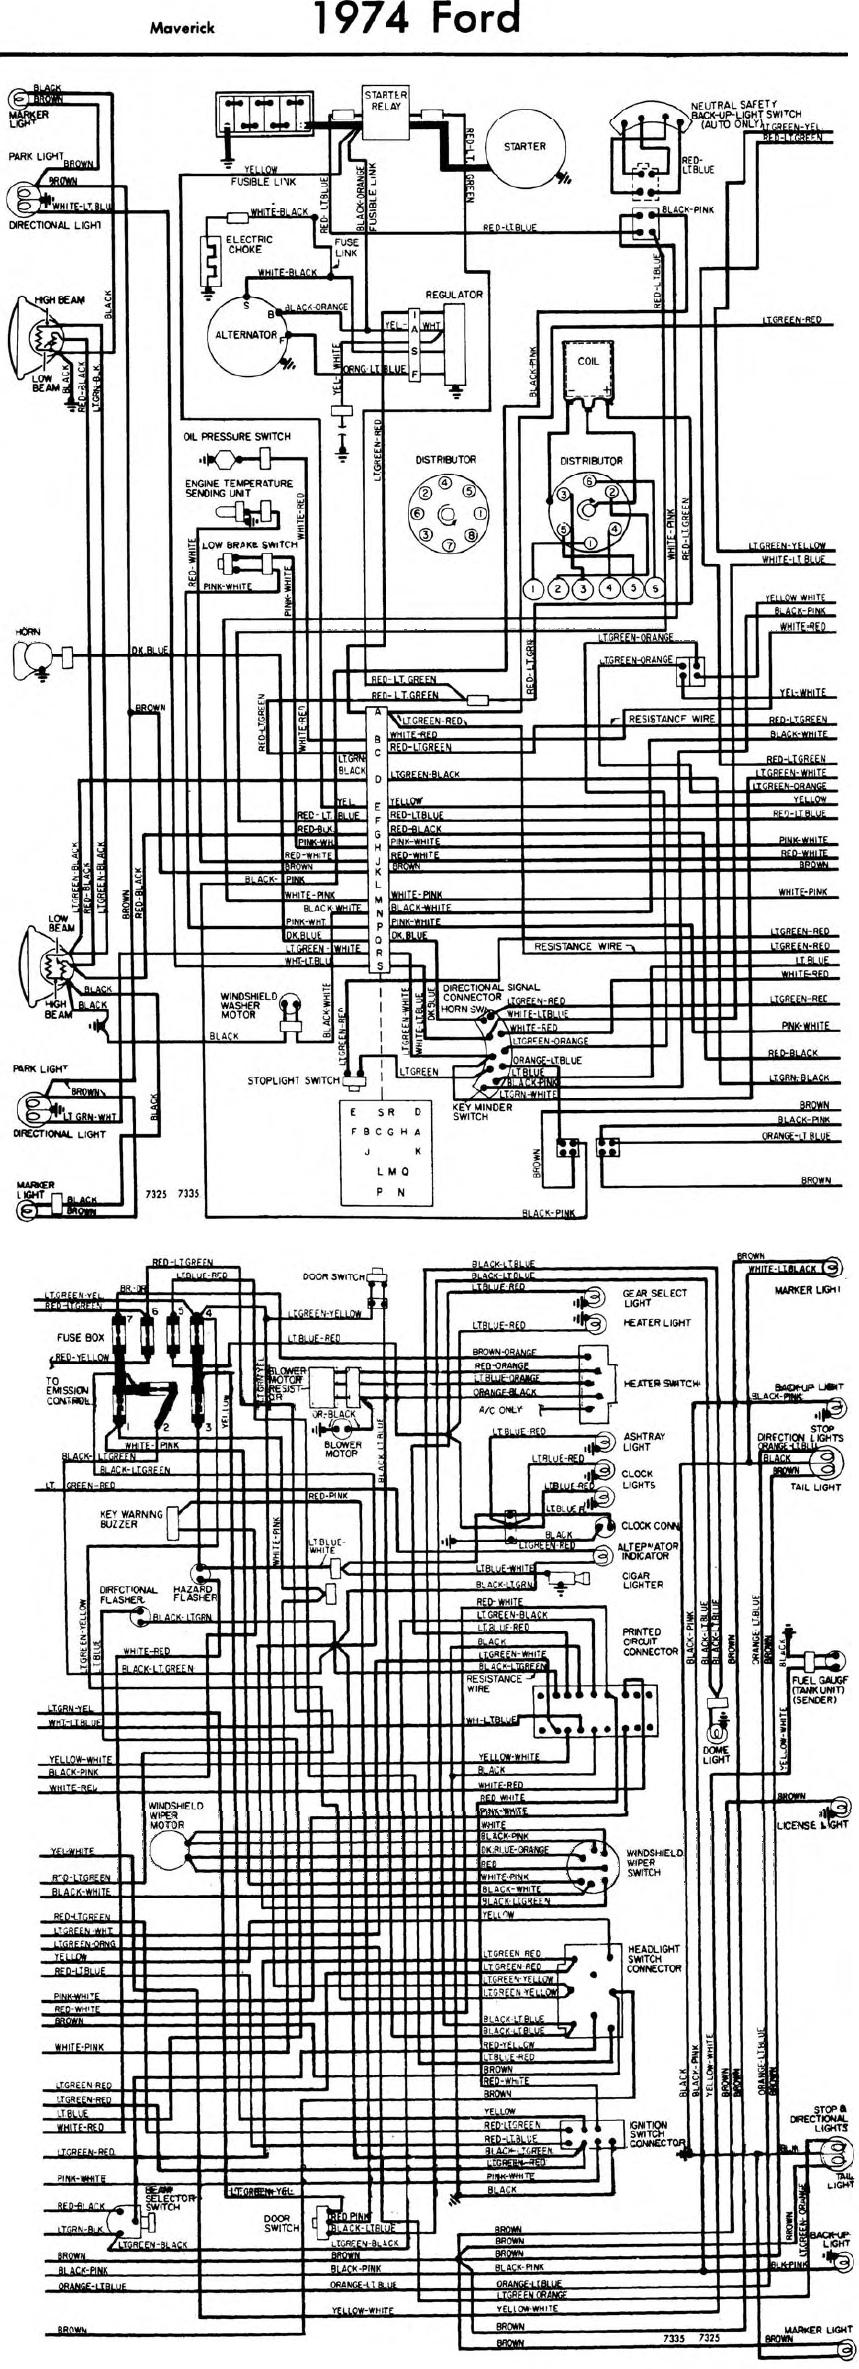 Beautiful 1975 Cb200 Wiring Diagram Component - Electrical and ...